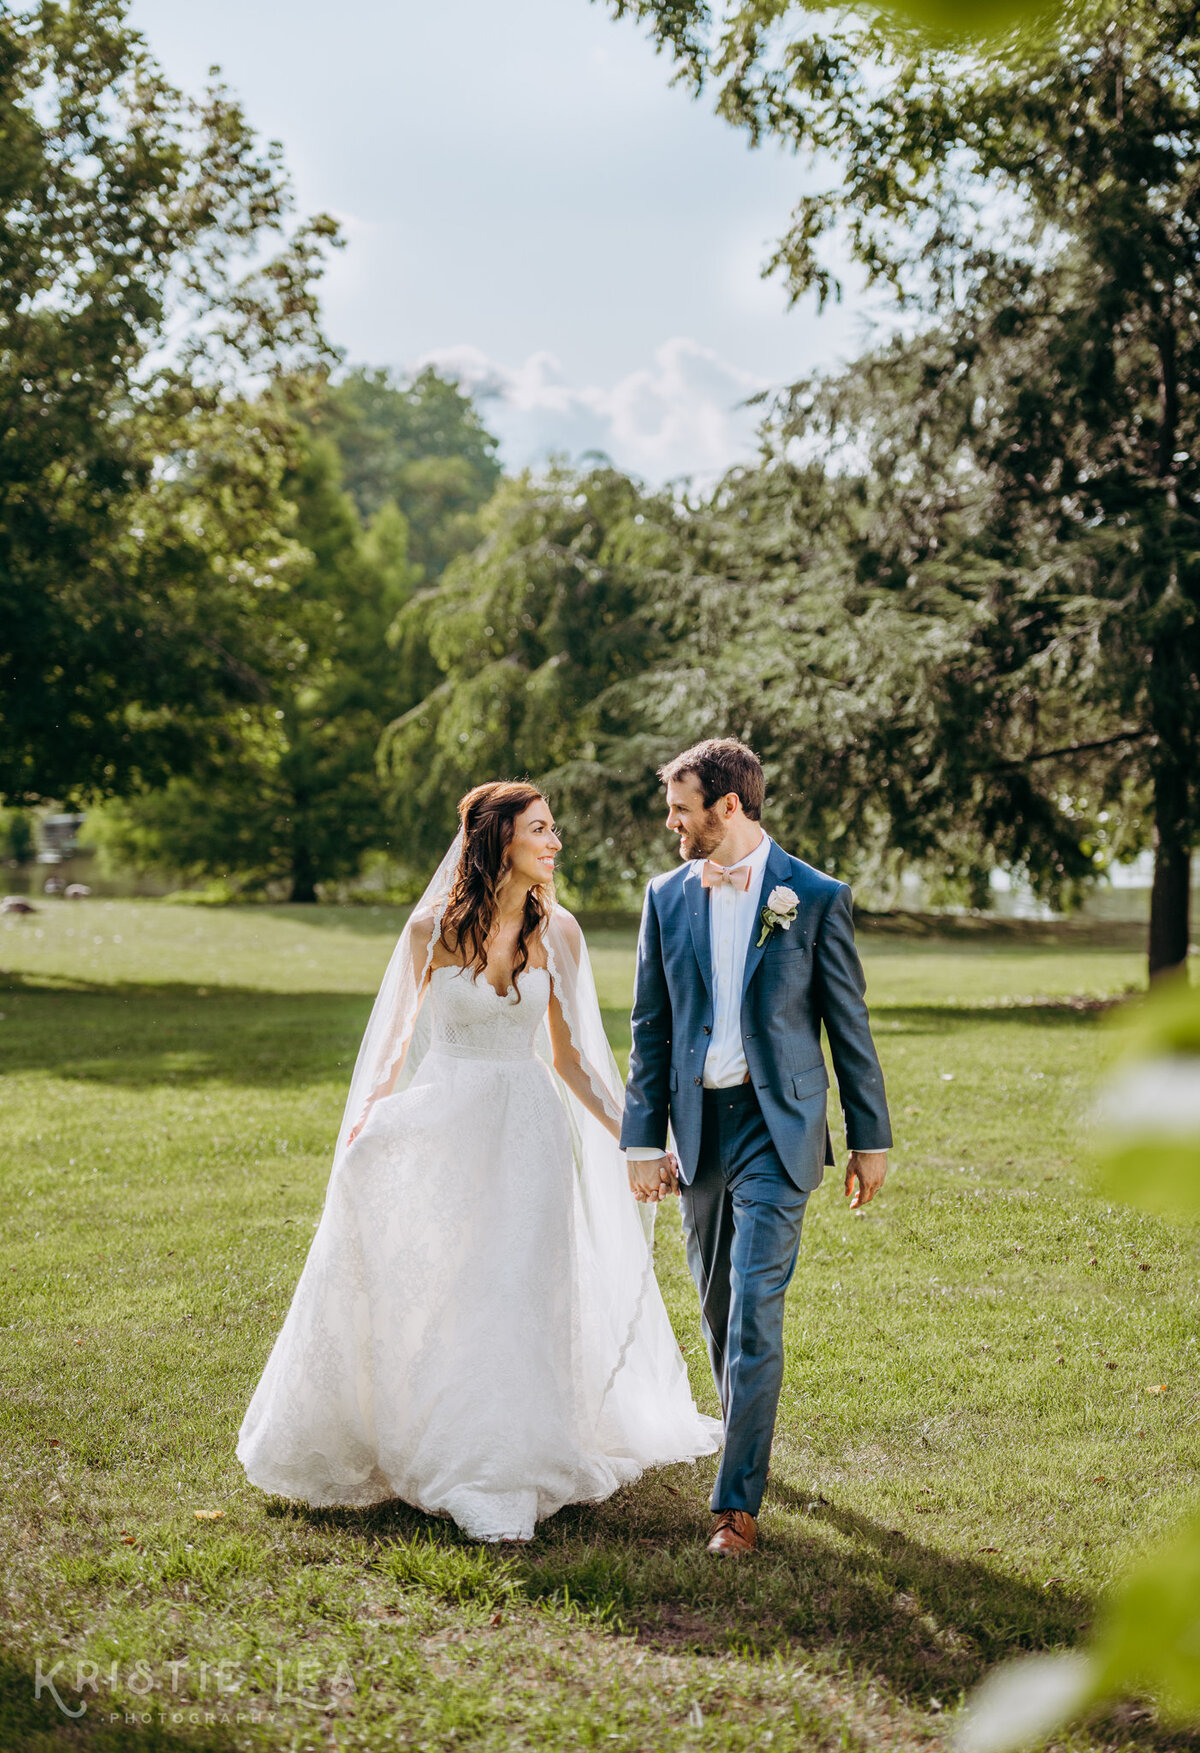 Kristie Lea Photography Wedding Engagement Portrait Virginia Colorful Enchanted Magical26